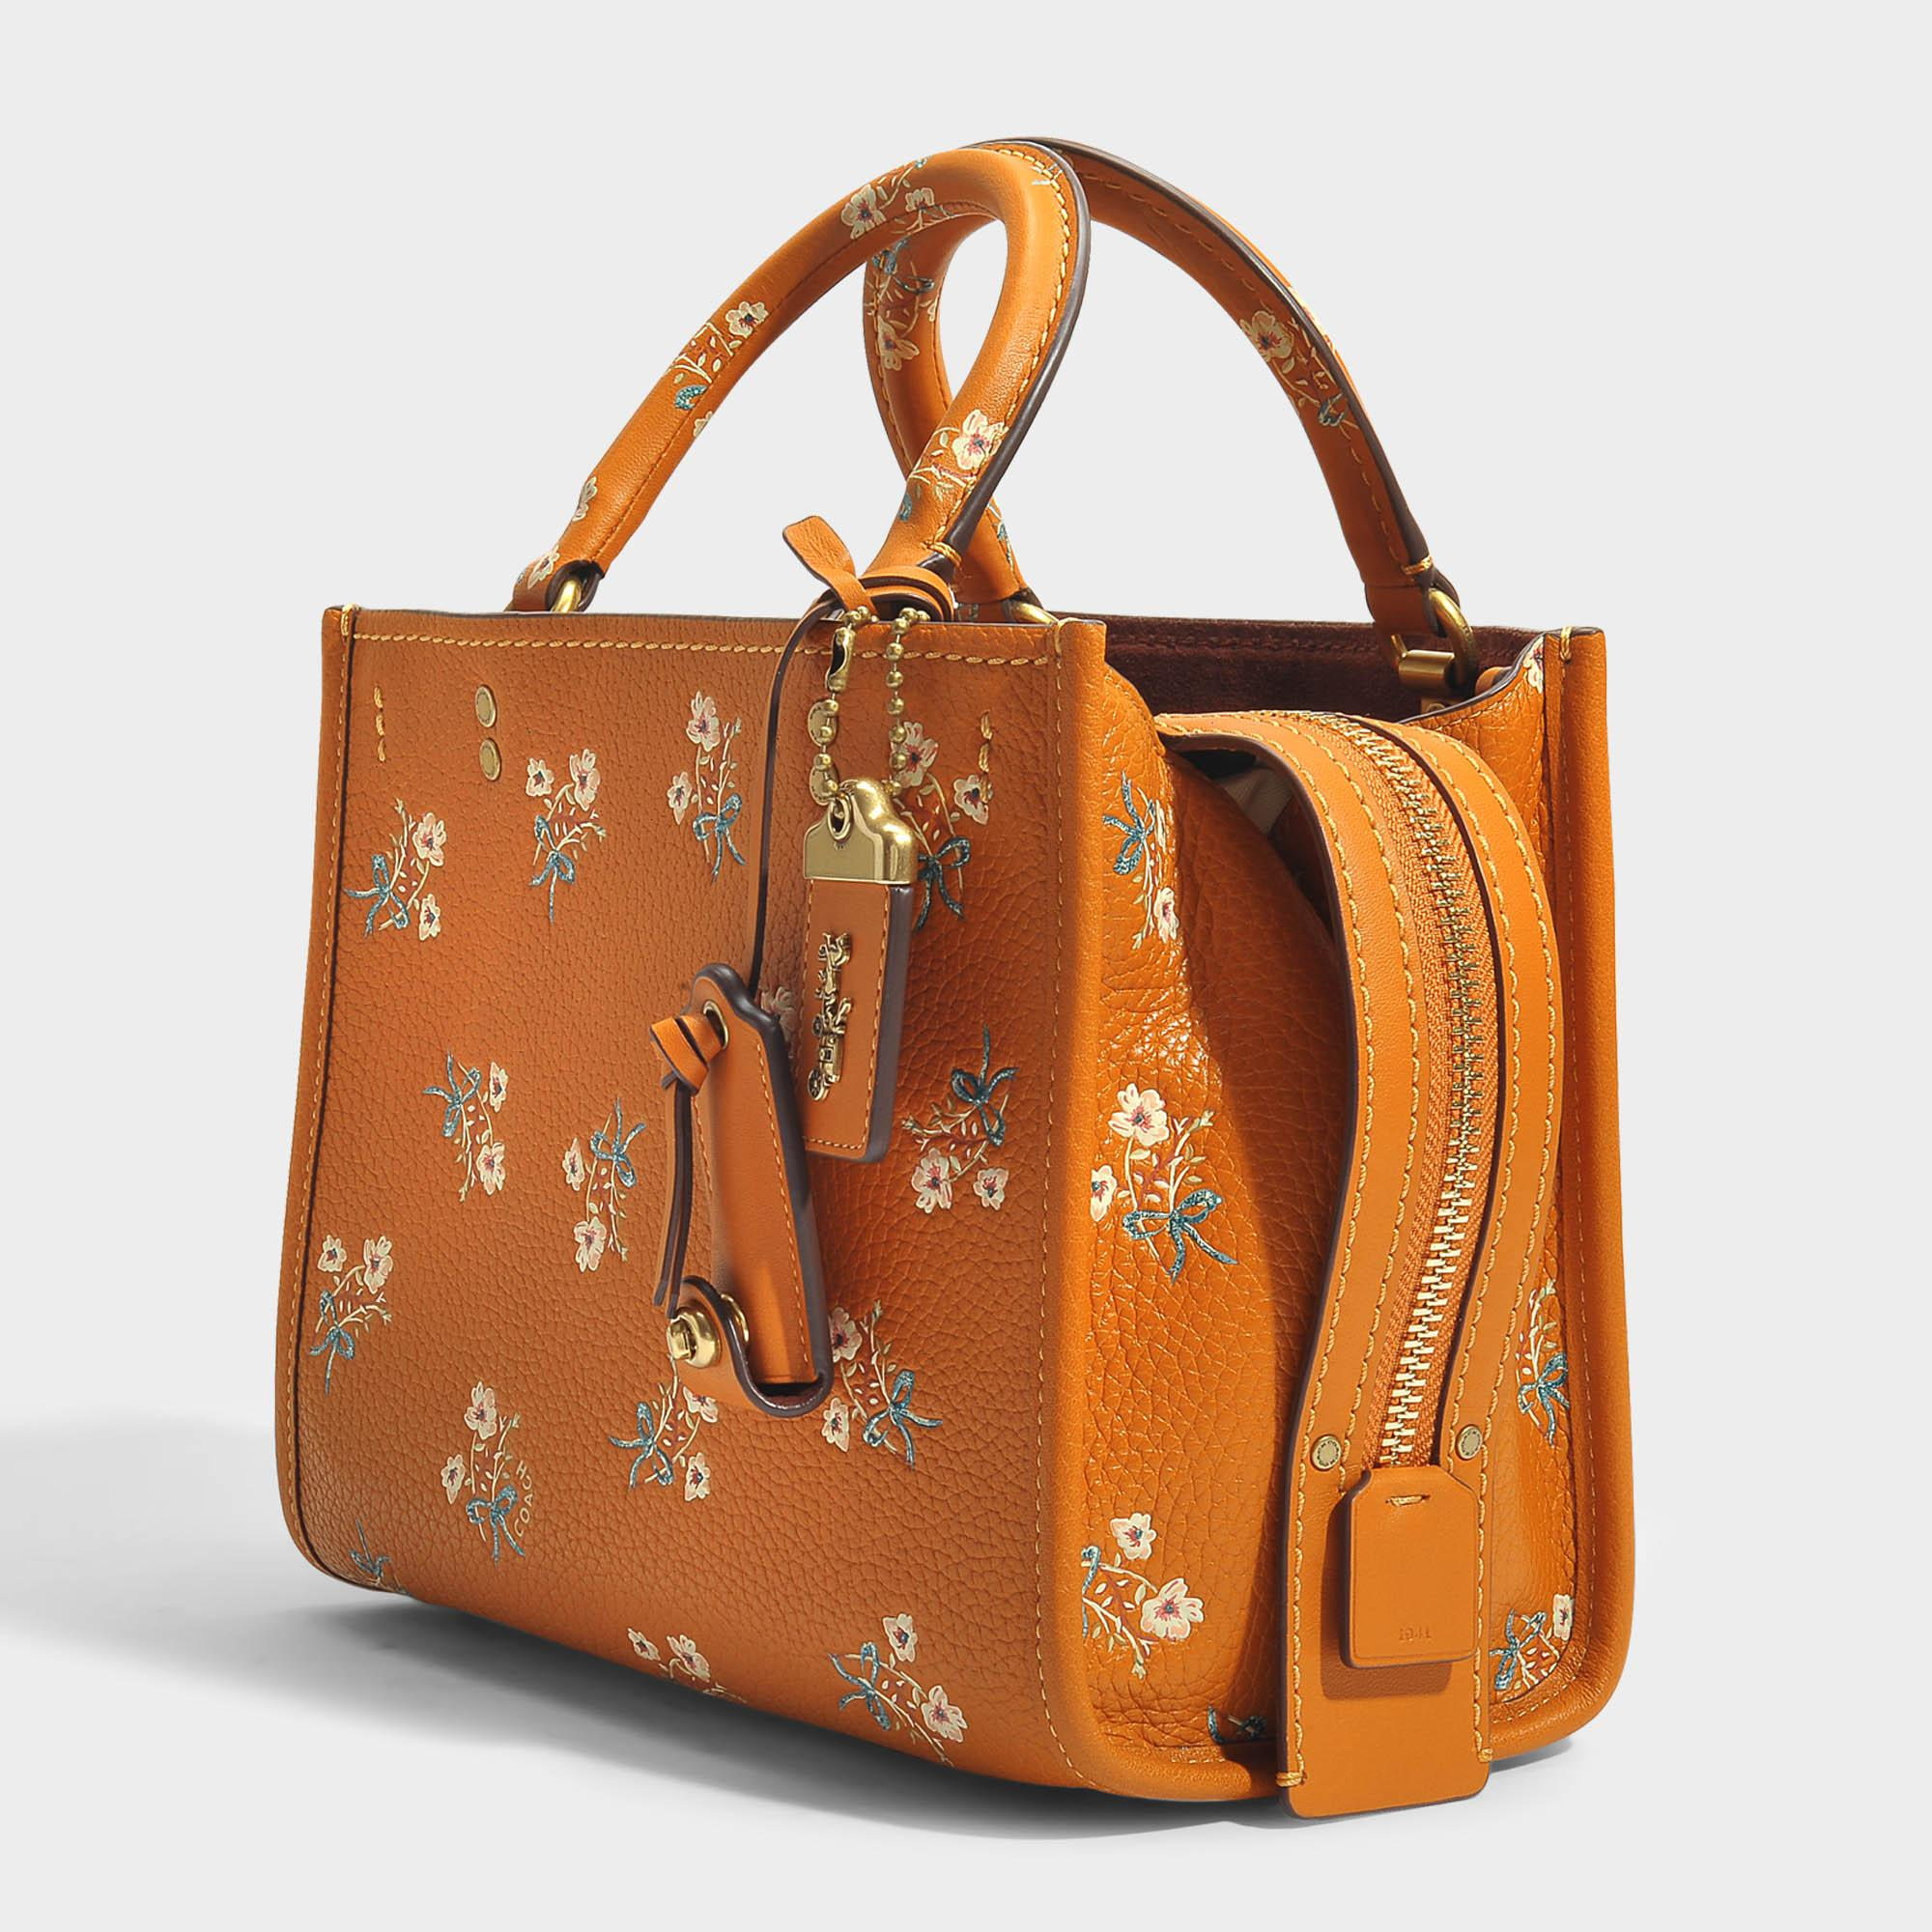 d0e86934b44b Lyst - COACH Rogue Bag 25 In Orange Calfskin